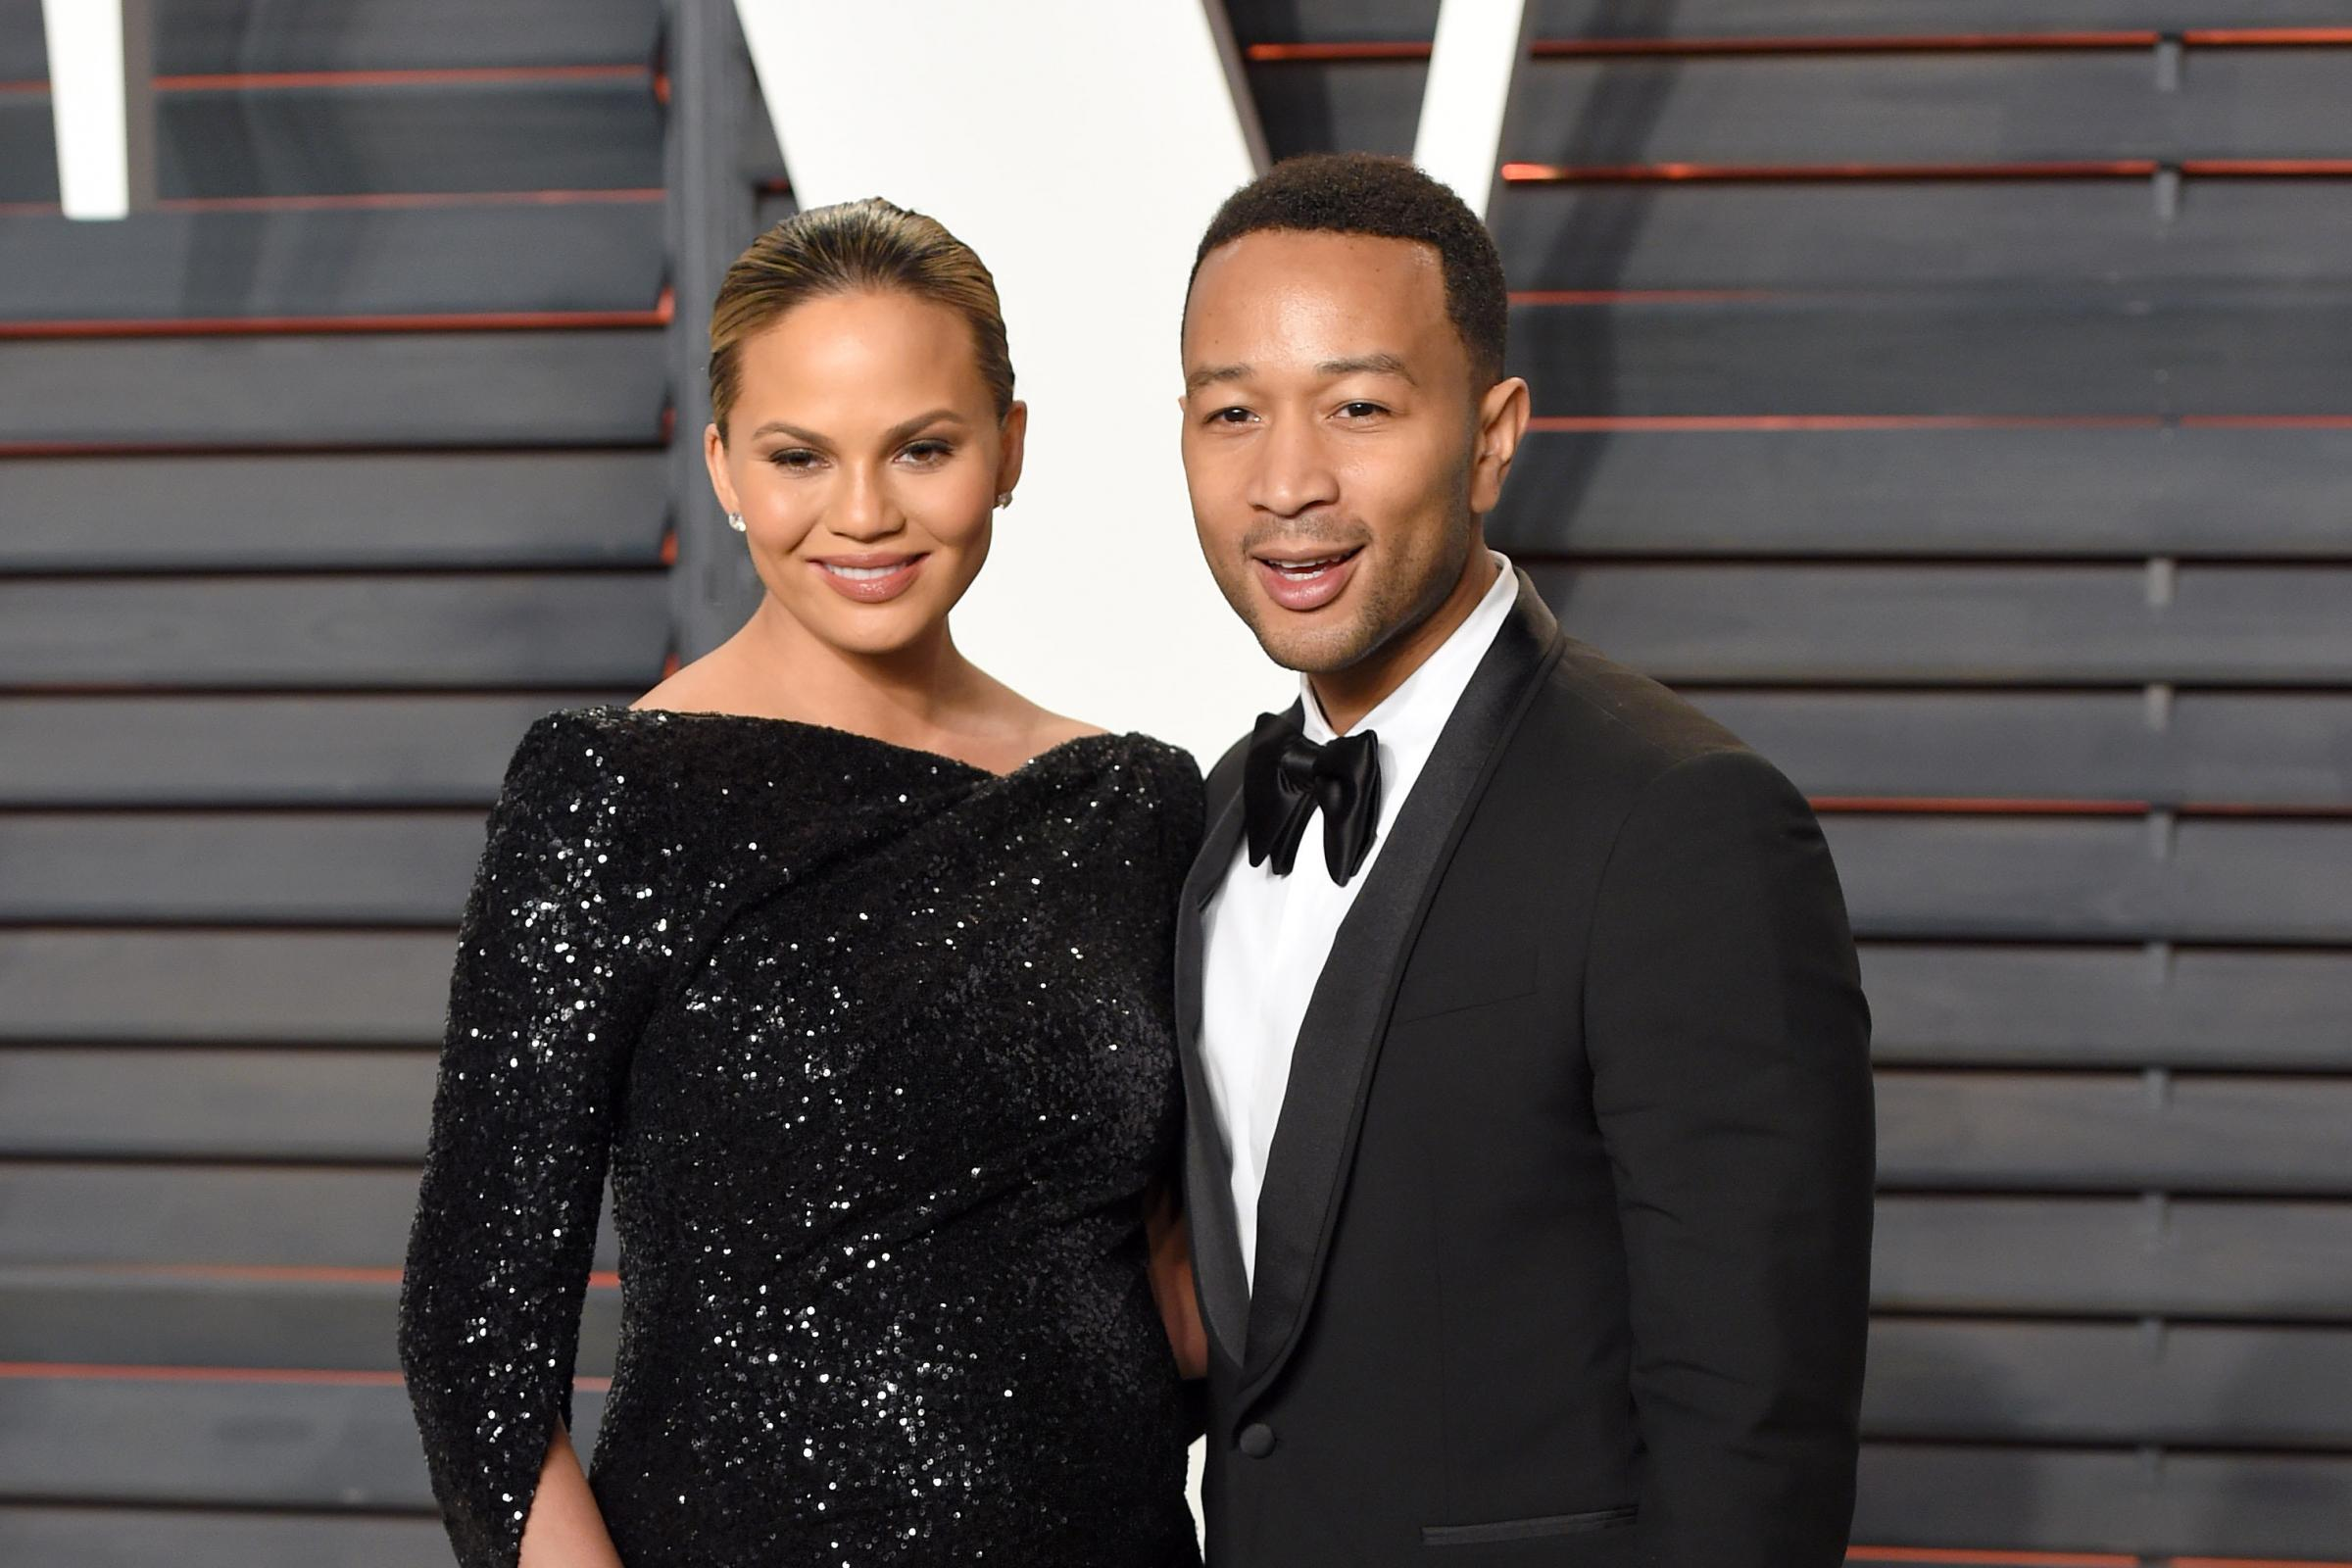 John Legend denies 'outrageous' charger theft claims from Chrissy Teigen (PA)